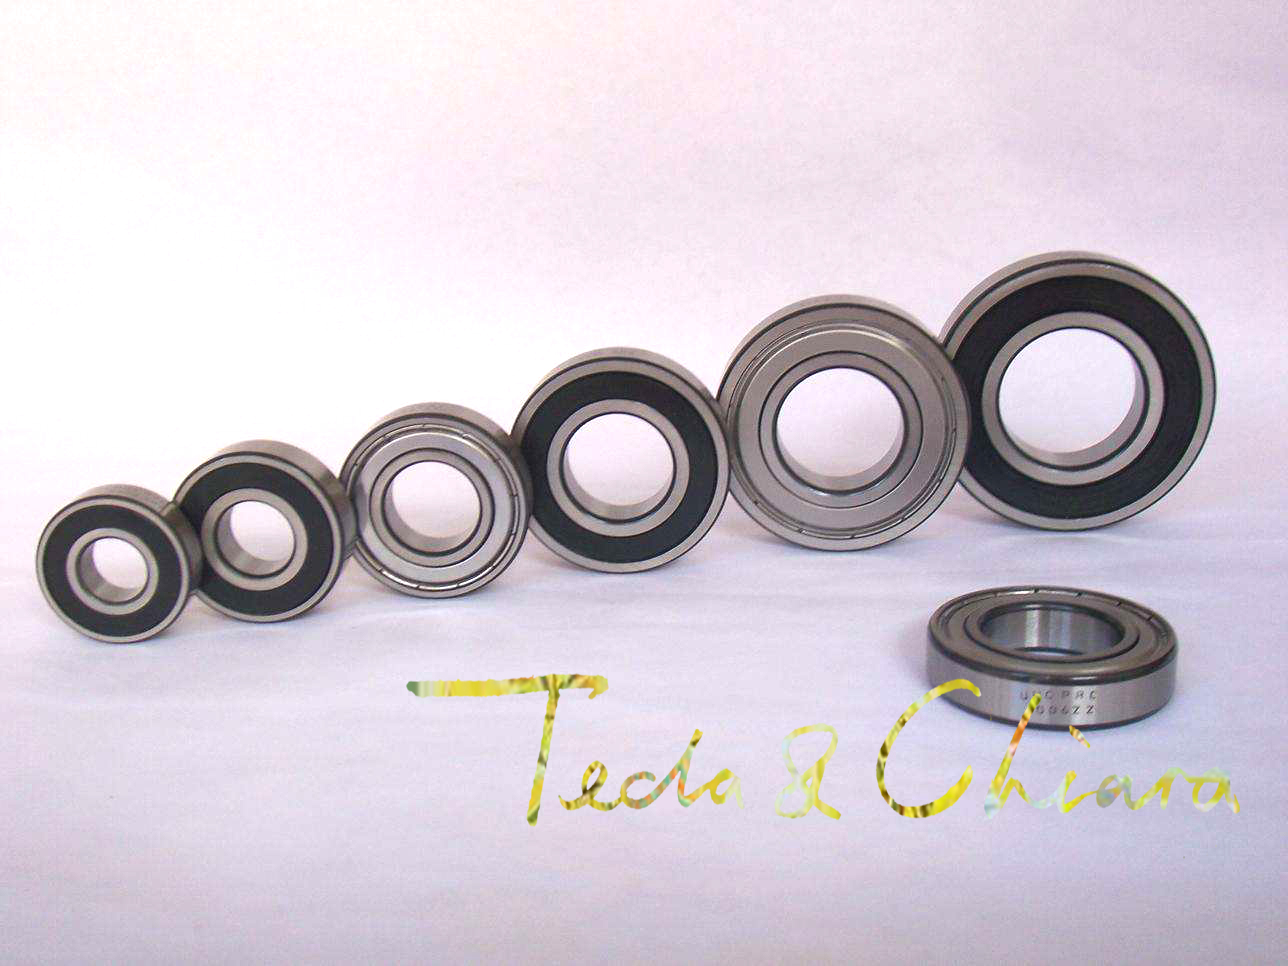 605 605ZZ 605RS 605-2Z 605Z 605-2RS ZZ RS RZ 2RZ Deep Groove Ball Bearings 5 x 14 x 5mm High Quality free shipping 25x47x12mm deep groove ball bearings 6005 zz 2z 6005zz bearing 6005zz 6005 2rs